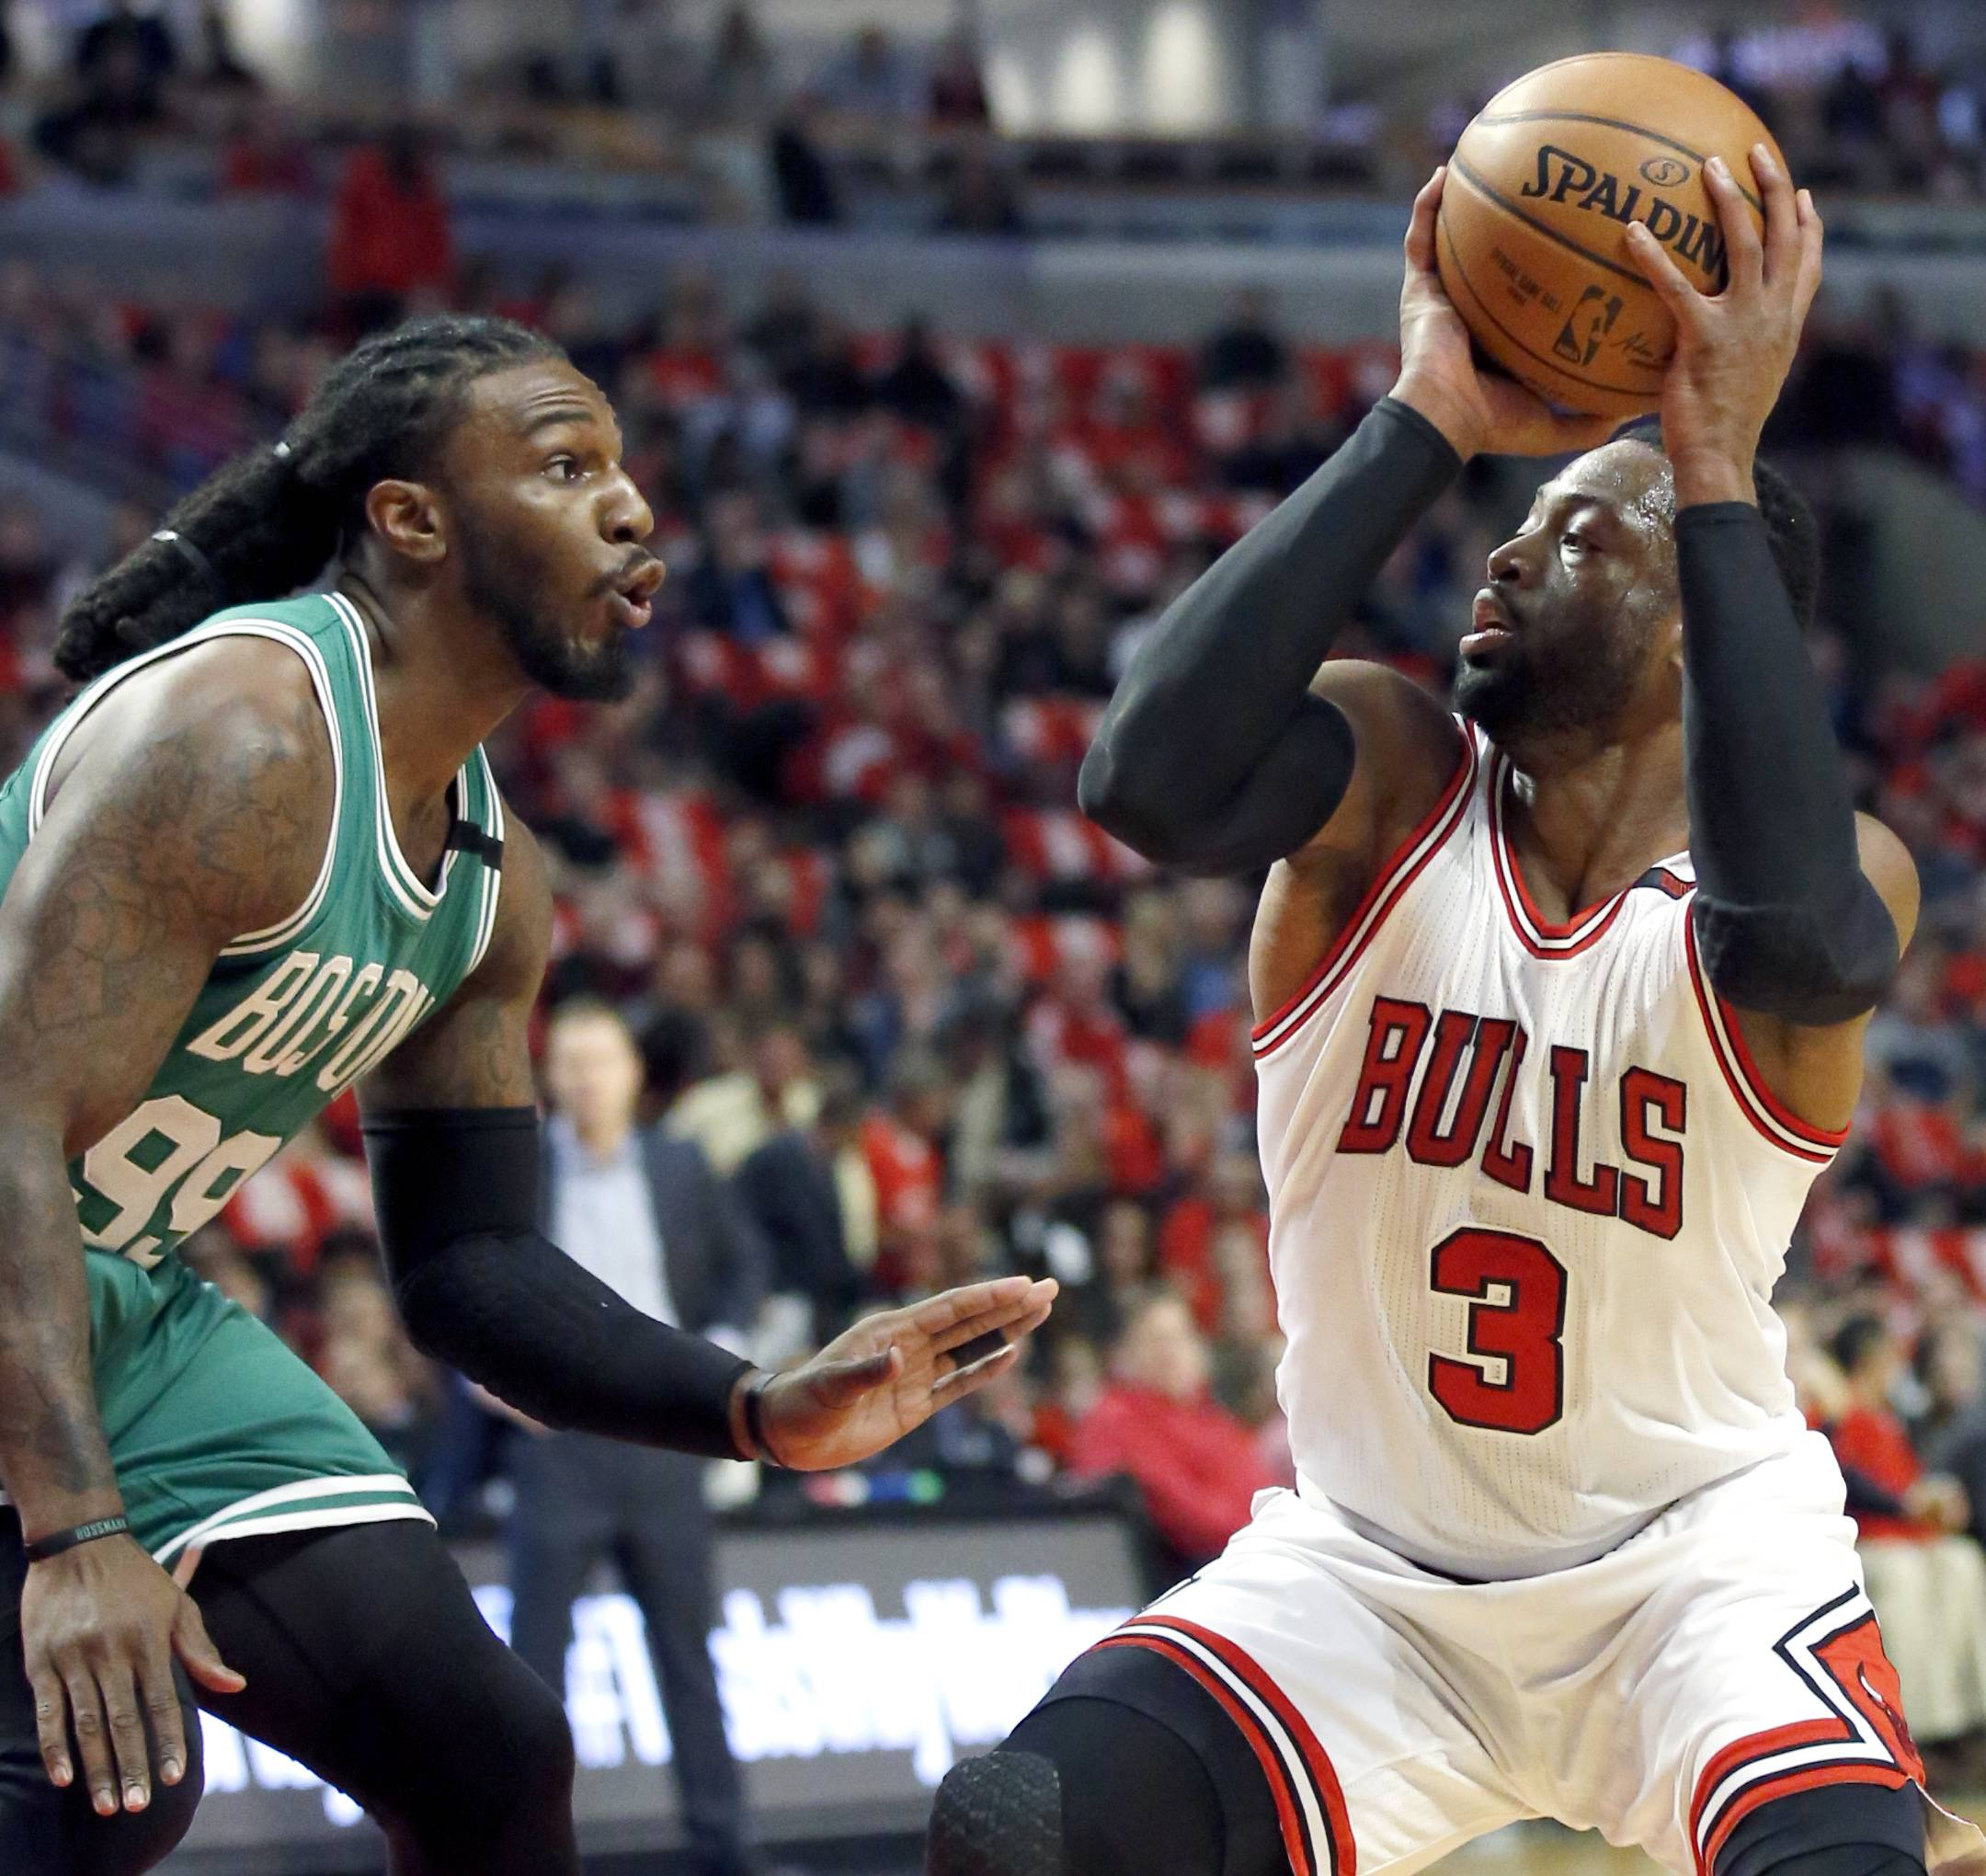 Chicago Bulls guard Dwyane Wade, right, looks for a shot against Boston Celtics forward Jae Crowder during the first half in Game 6 Friday in Chicago.